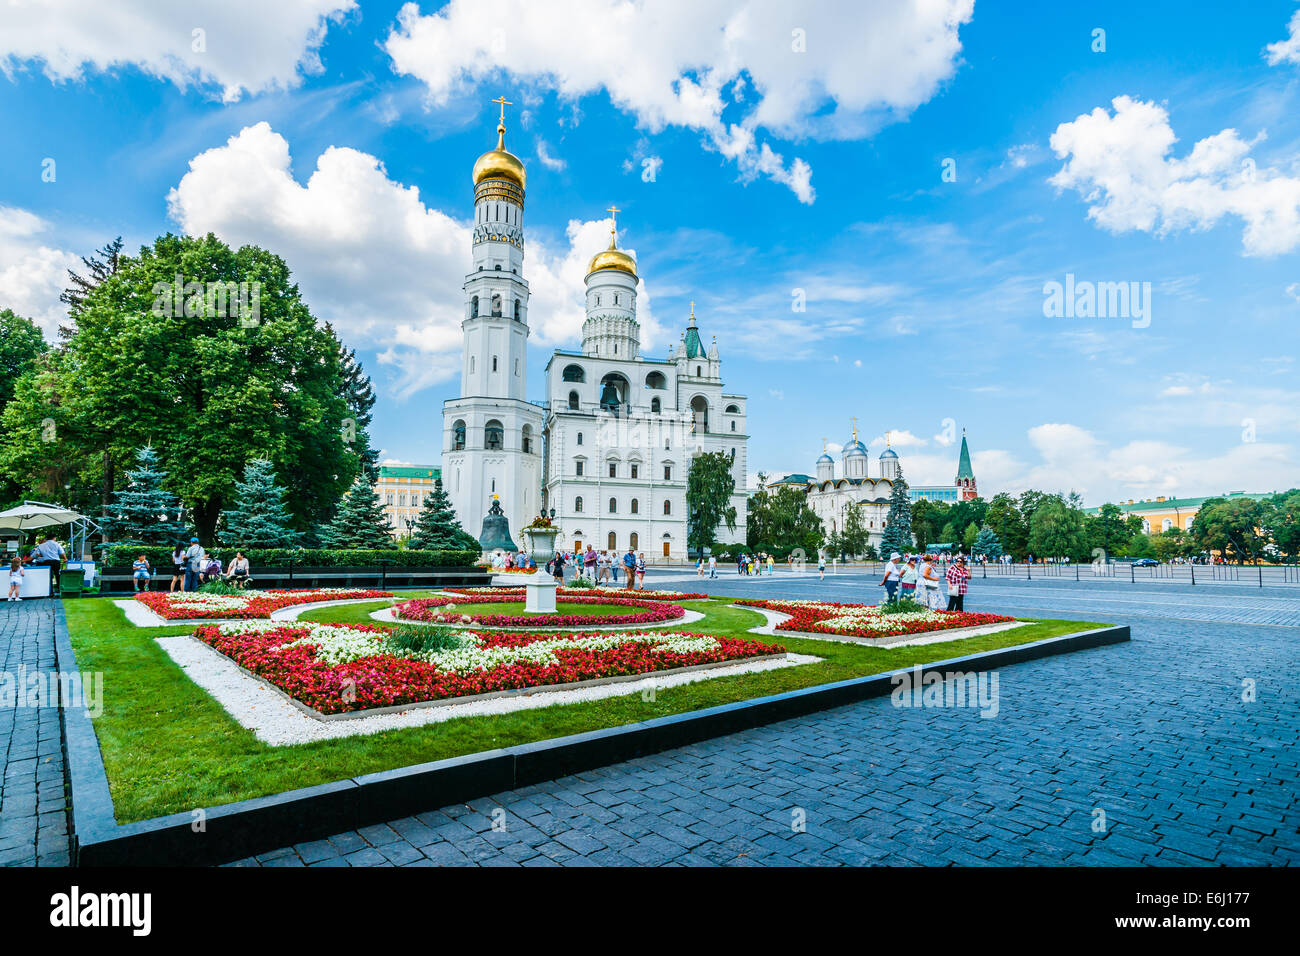 Moscow Kremlin Tour - 65. Ivanovskaya square of the Kremlin. This is the largest Kremlin square - Stock Image